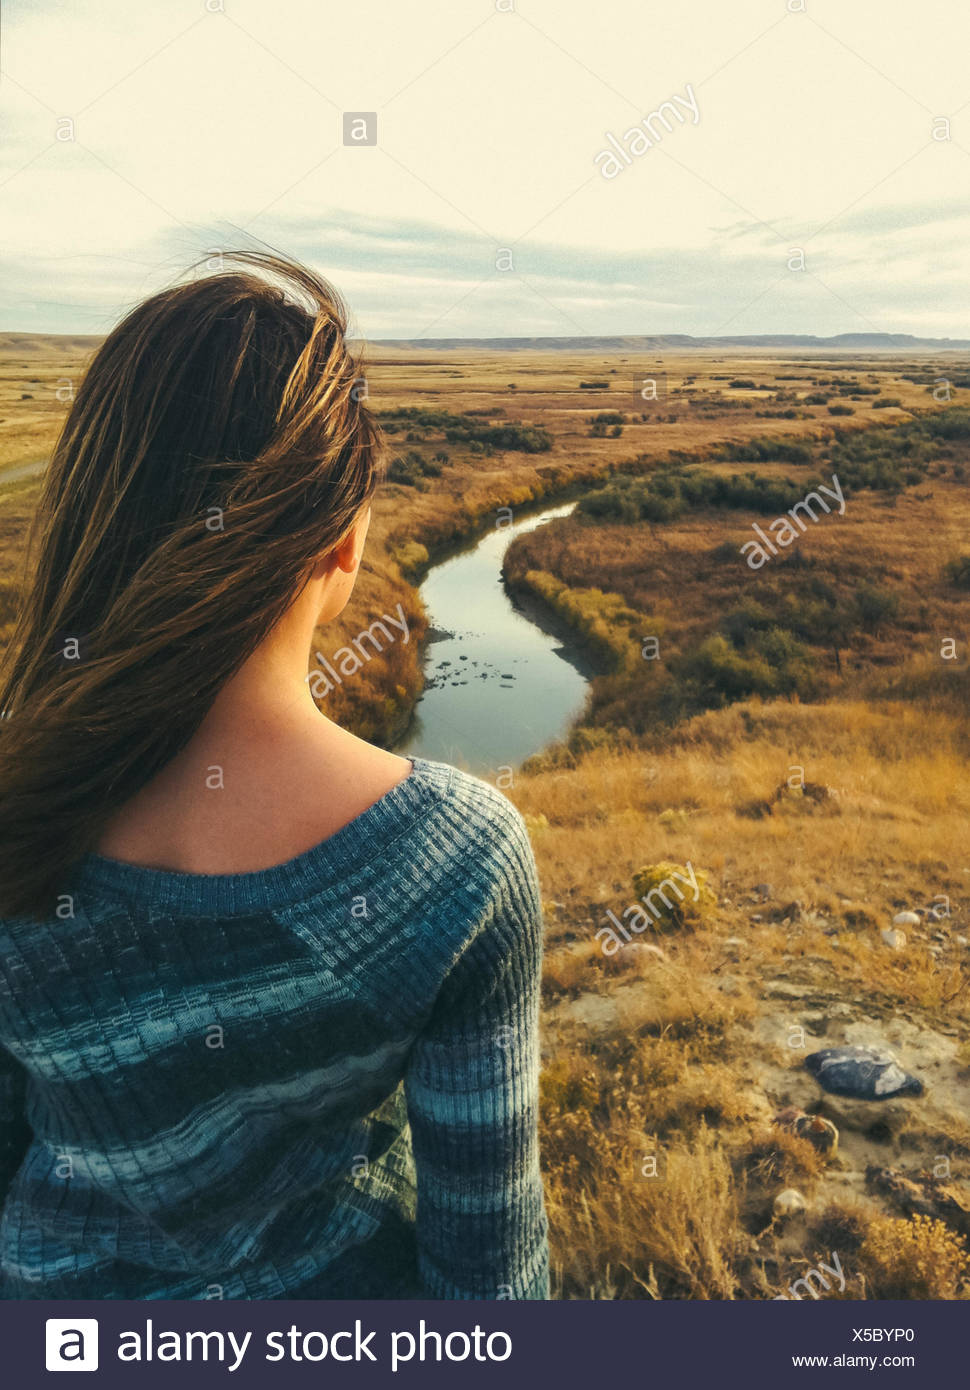 Canada, Saskatchewan, Val Marie, Rear view of woman overlooking prairie and river vista in fall Stock Photo